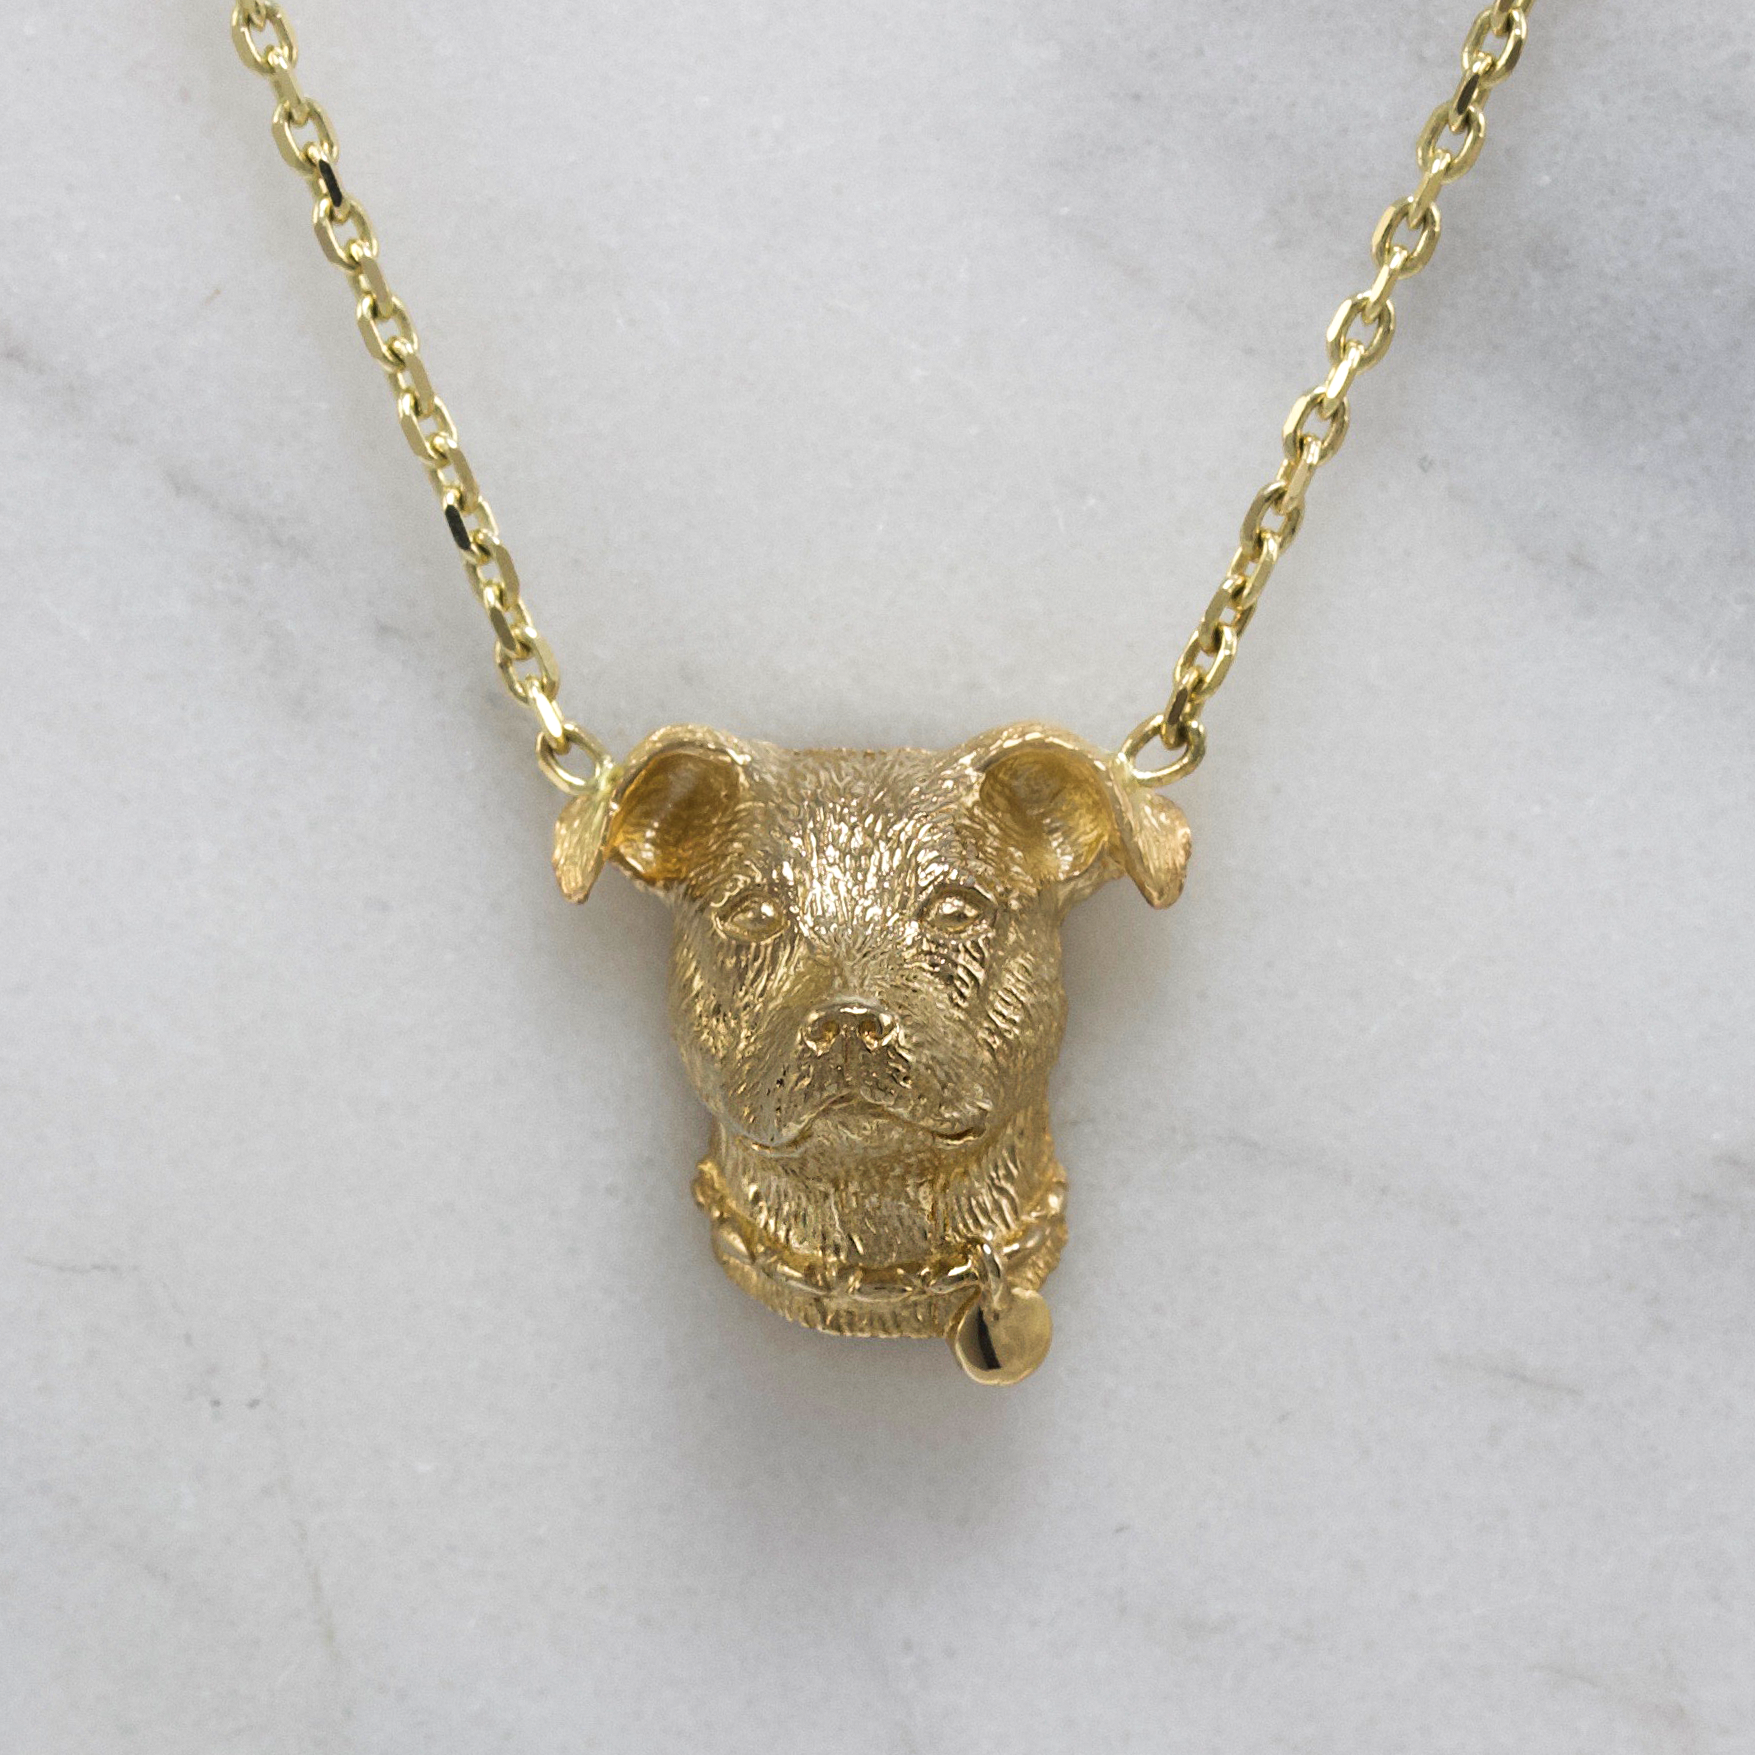 Gold Pitbull Necklace